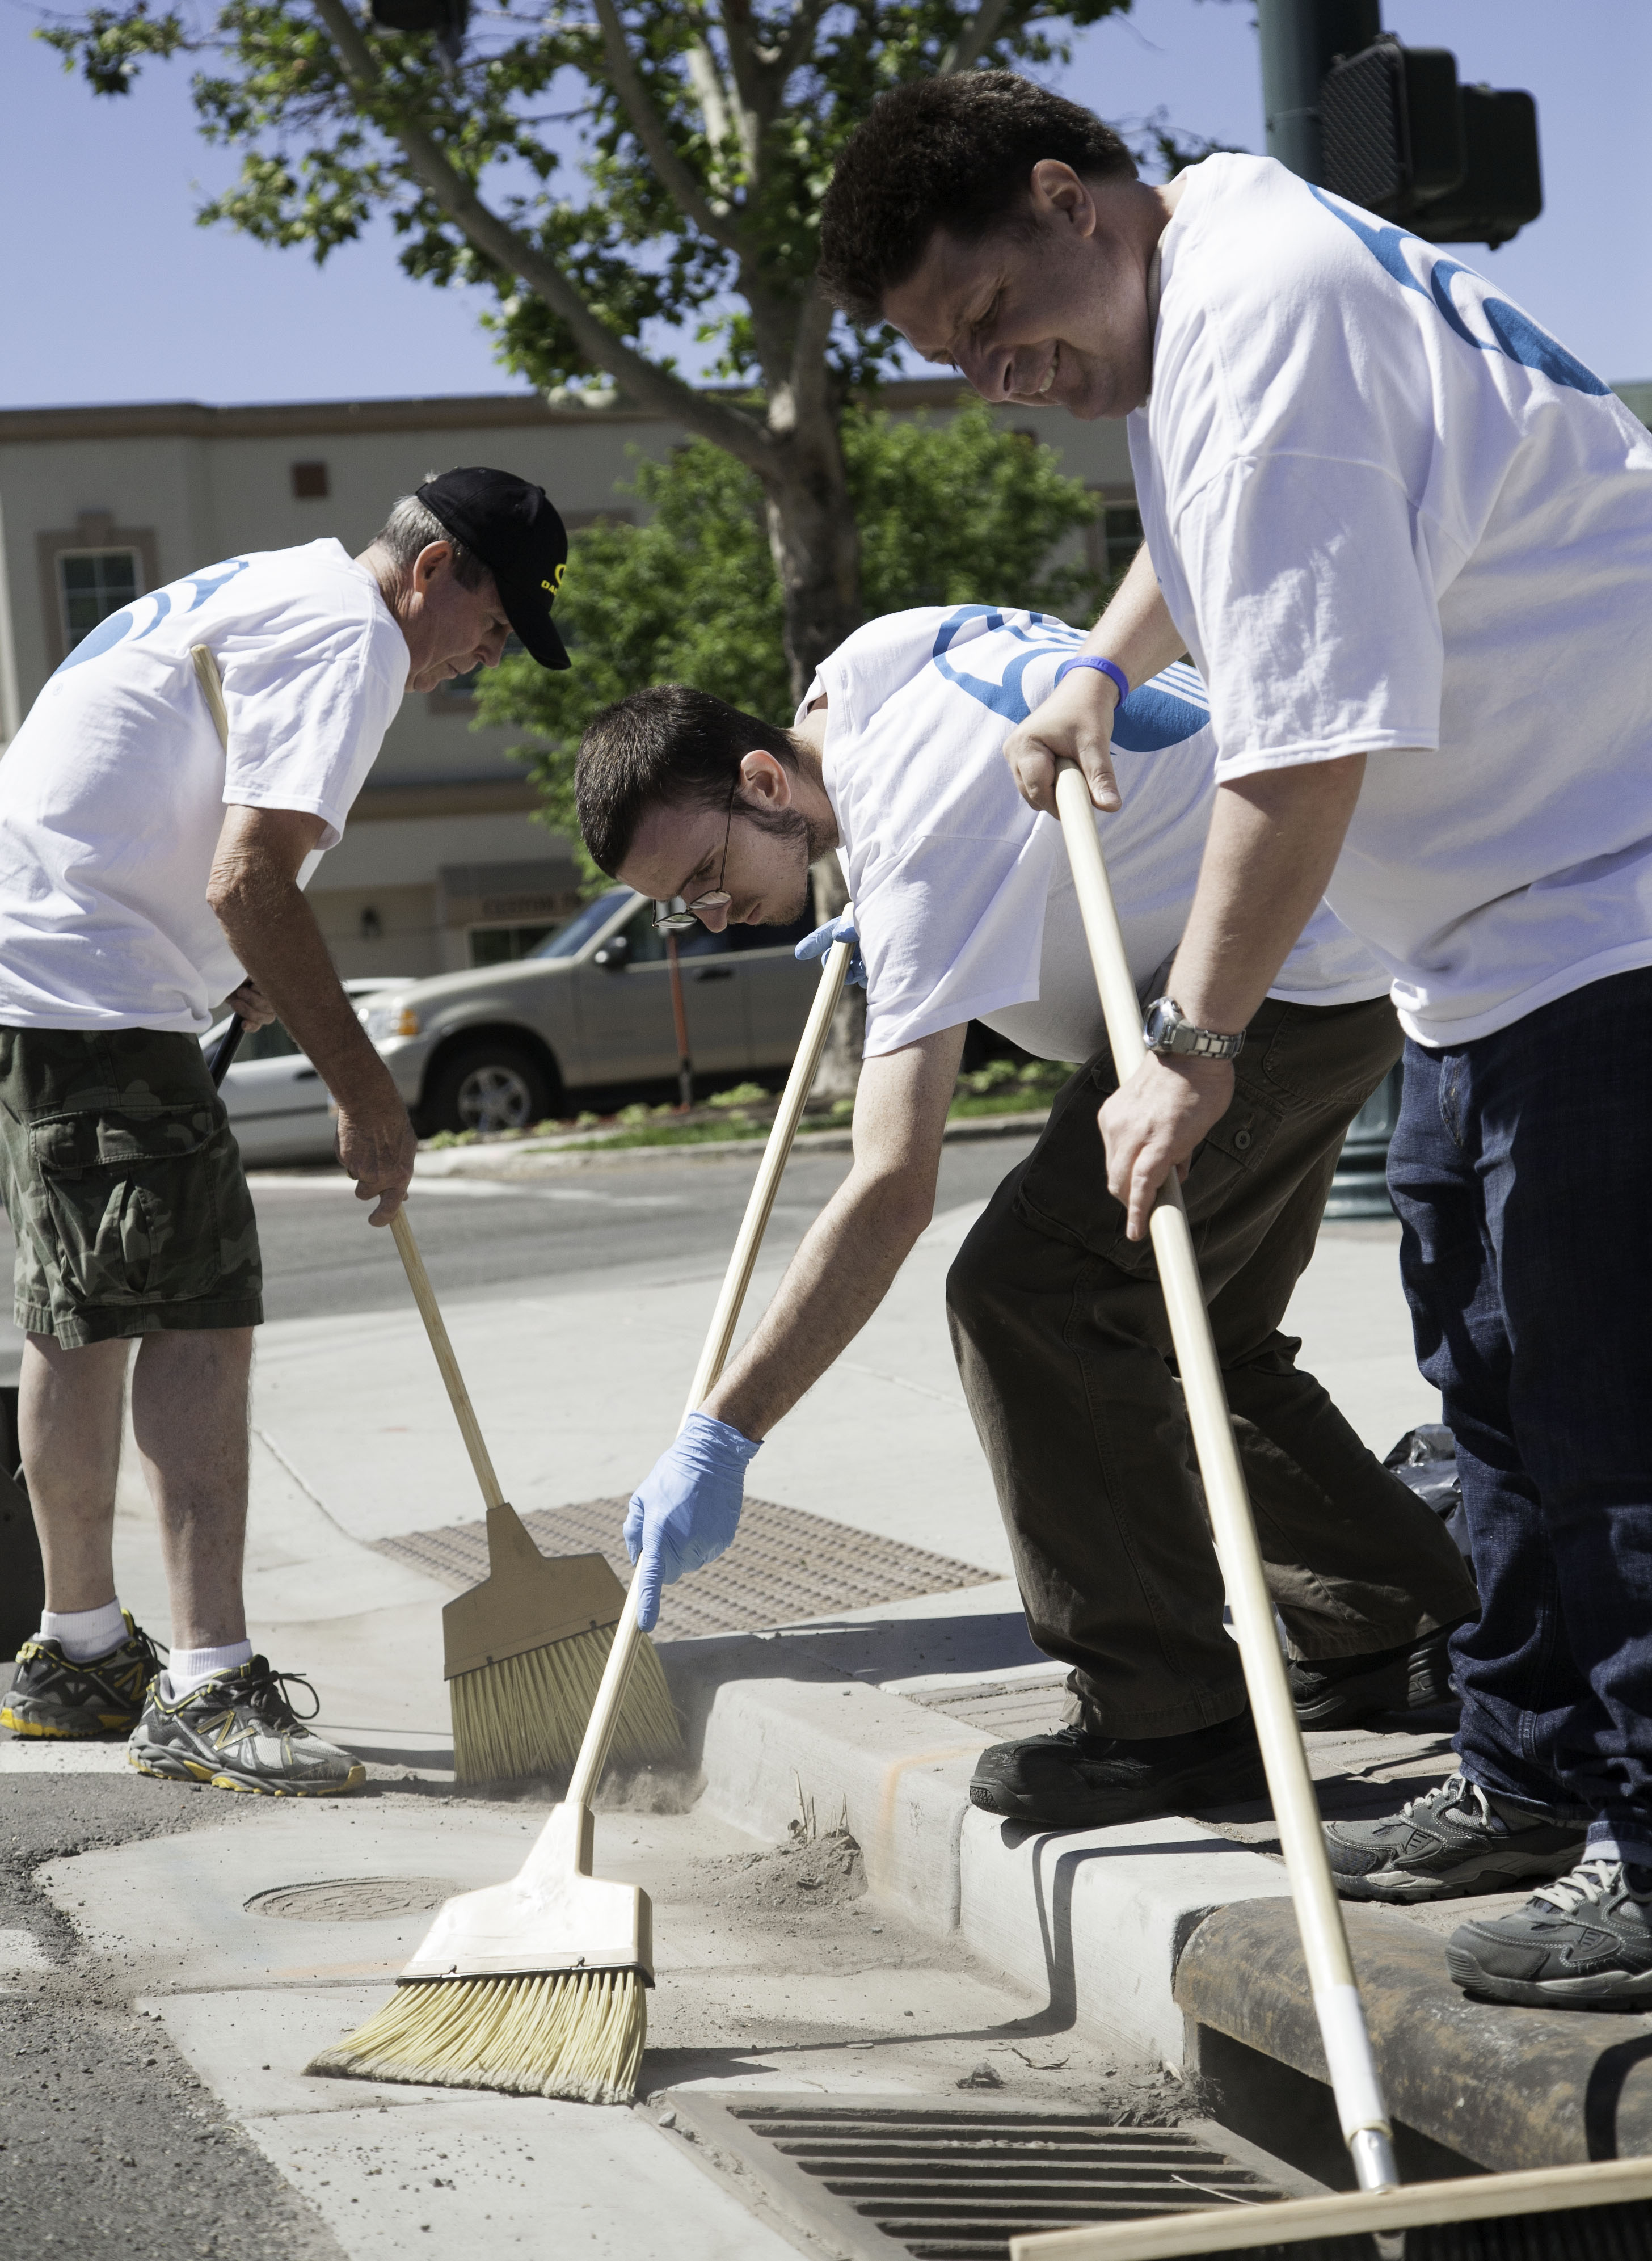 Merrill Steel, James Raddatz, and Kin Nelson help clean up Center Street in Provo as part of Nu Skin's Force for Good Day June 6. Photo by Elliott Miller